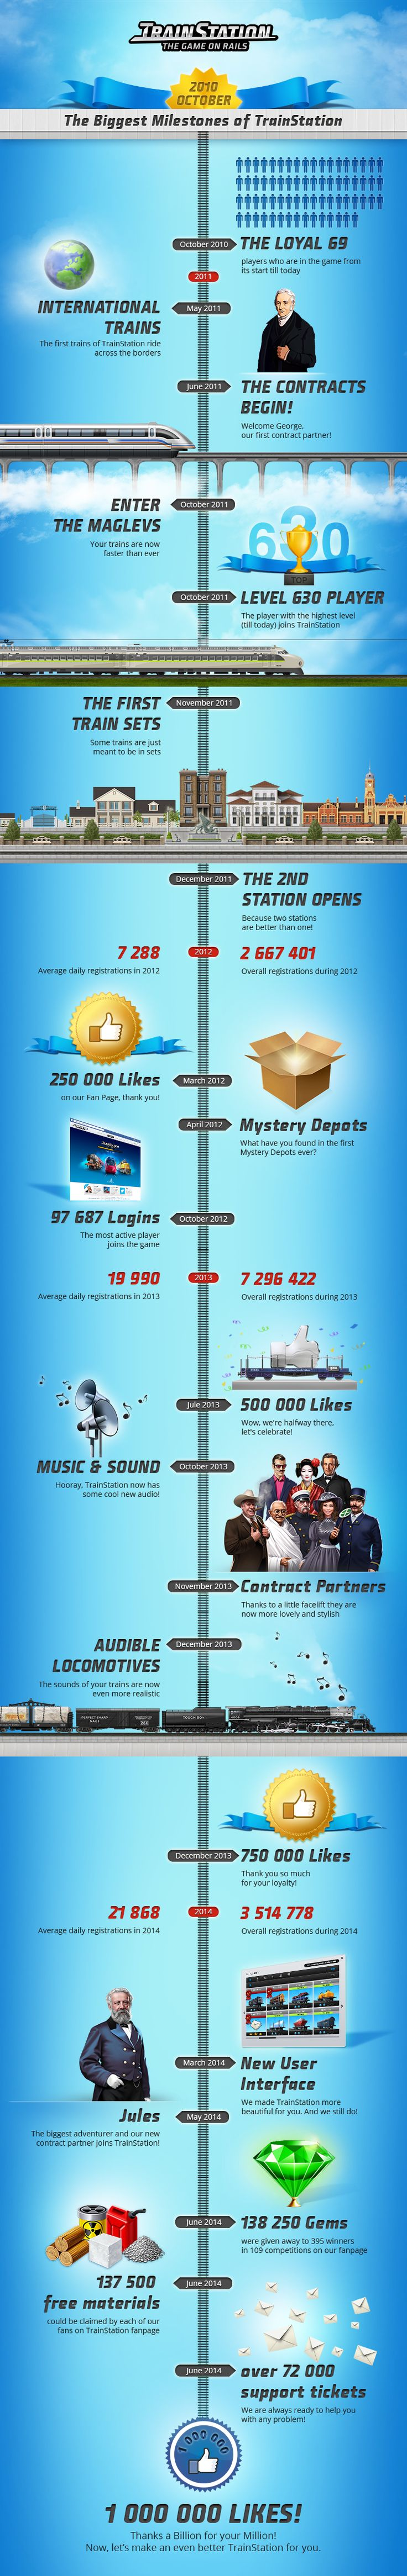 An awesome Infographics documenting our way towards the 1 000 000 million likes on TrainStation Fanpage